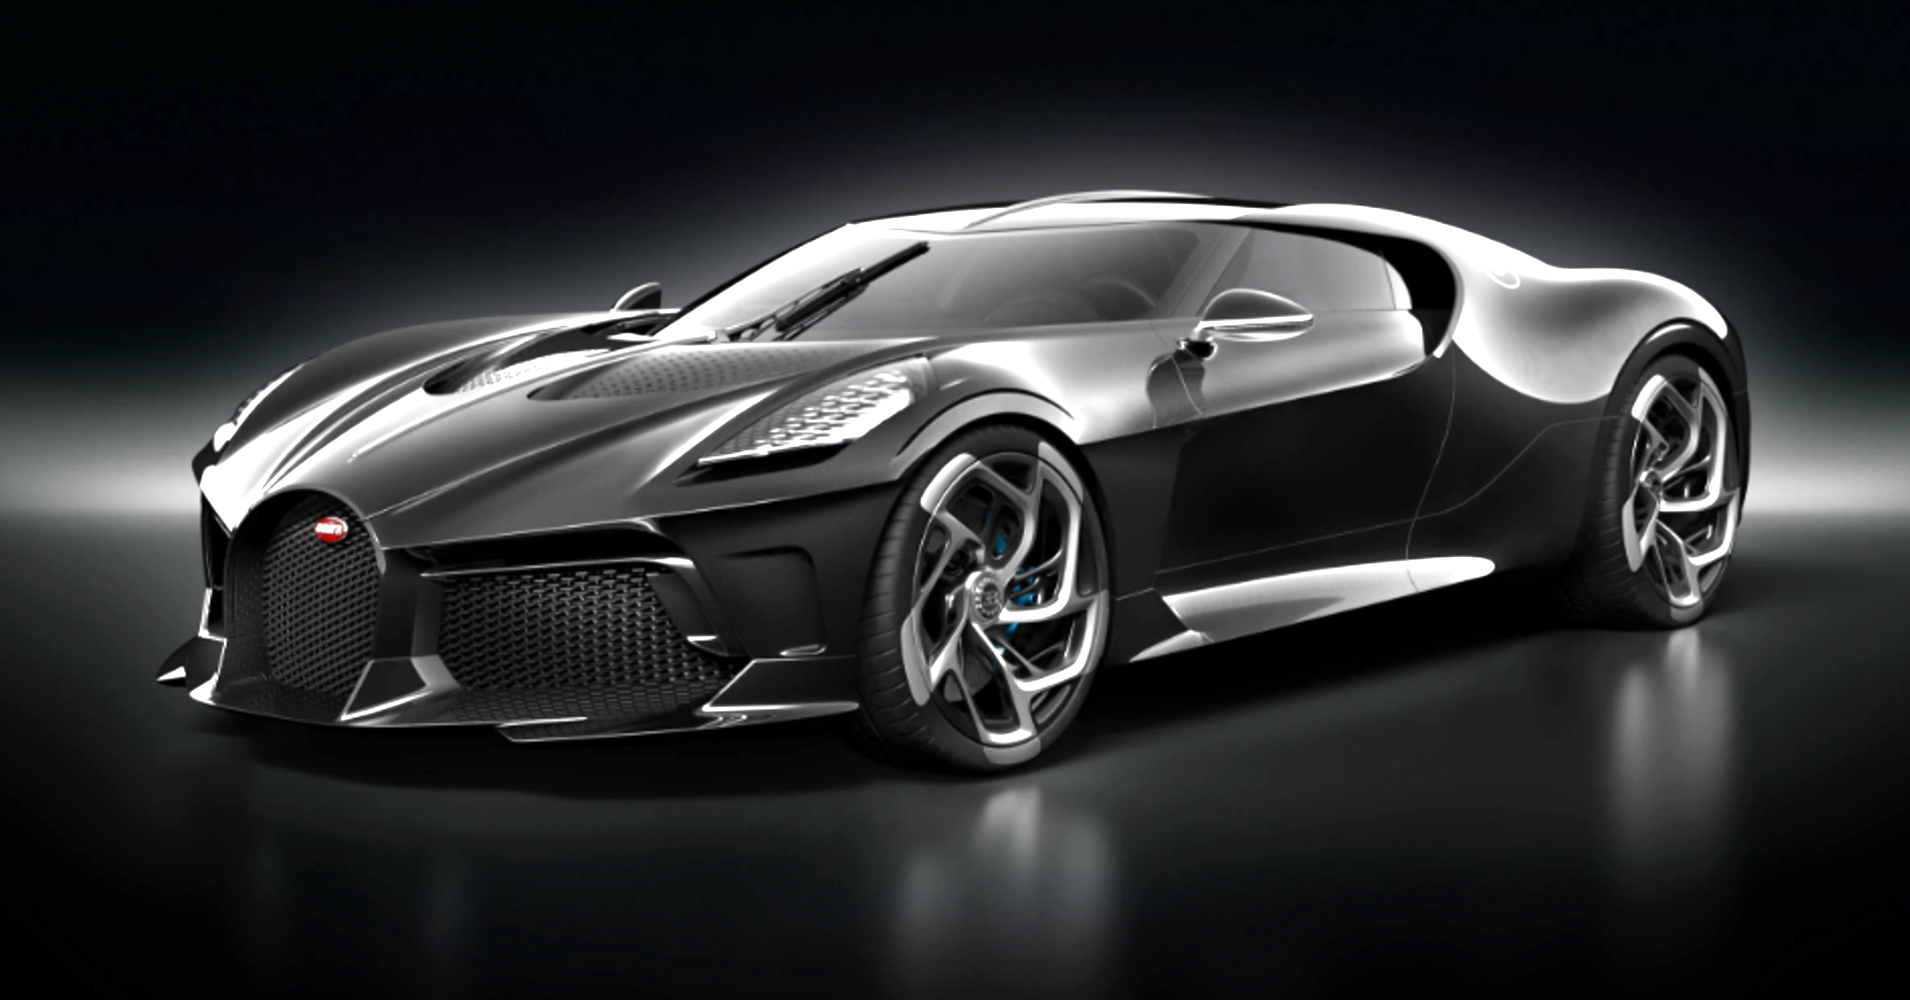 Bugatti Just Unveiled The Most Expensive New Car Ever Built Expensive Cars Sports Car Bugatti